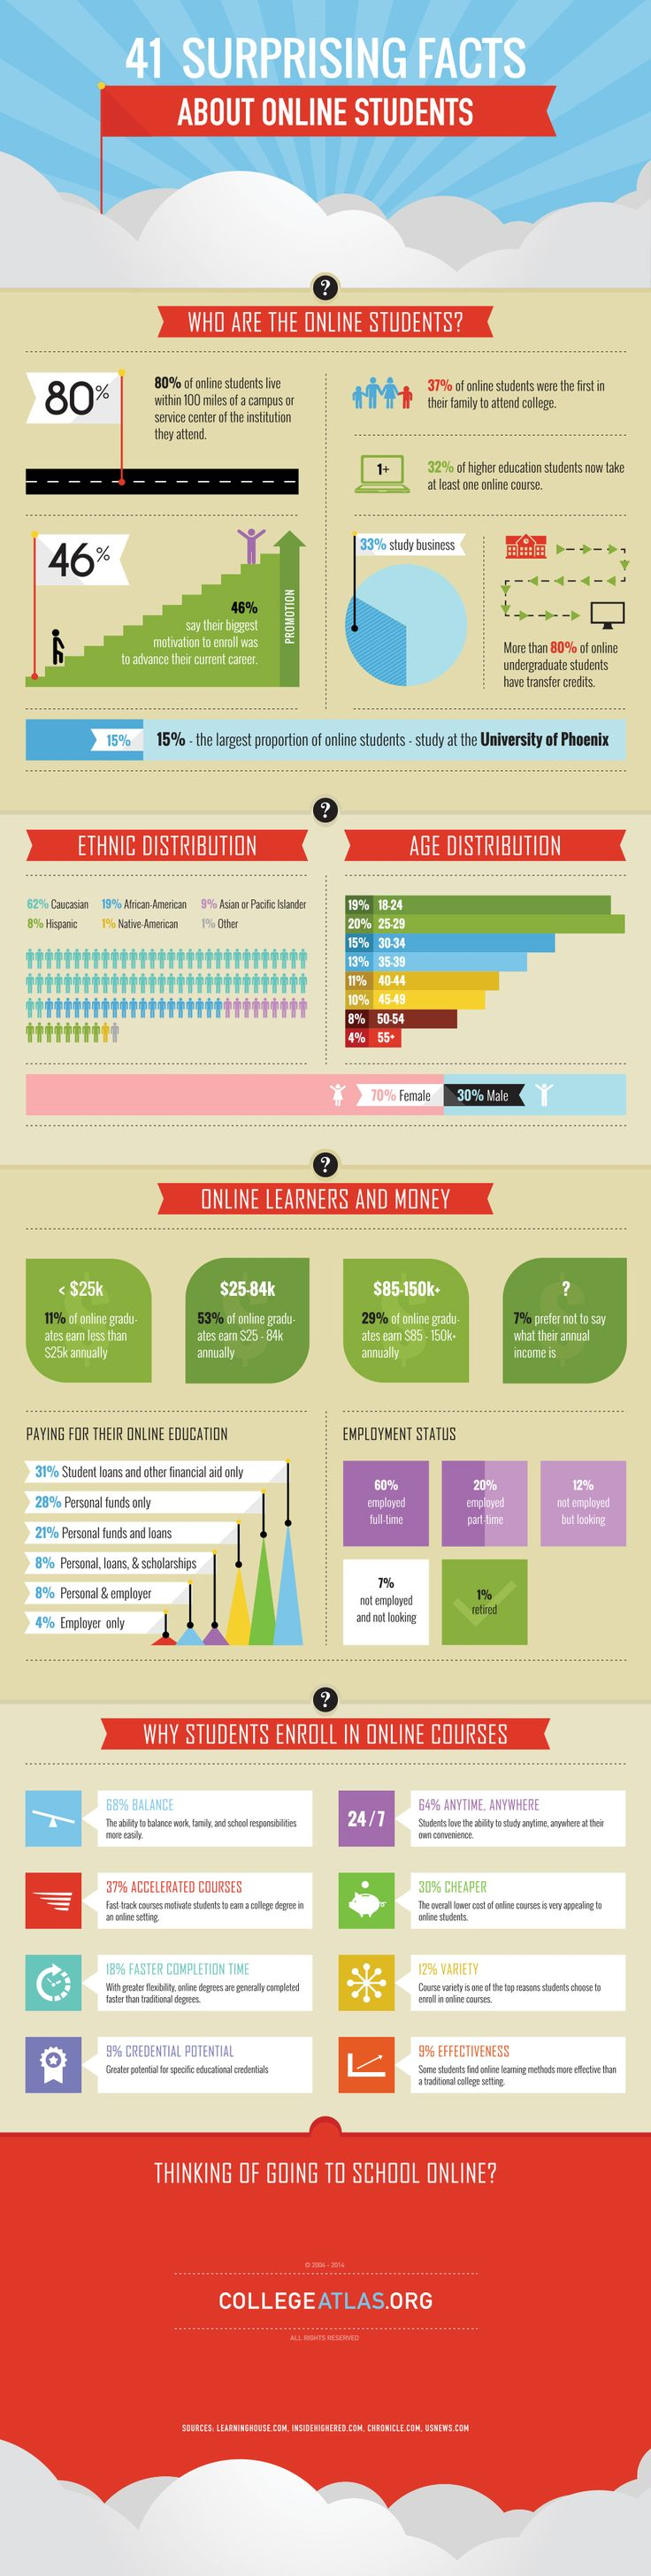 41 Facts About Online Students Infographic - http://elearninginfographics.com/41-facts-about-online-students-infographic/